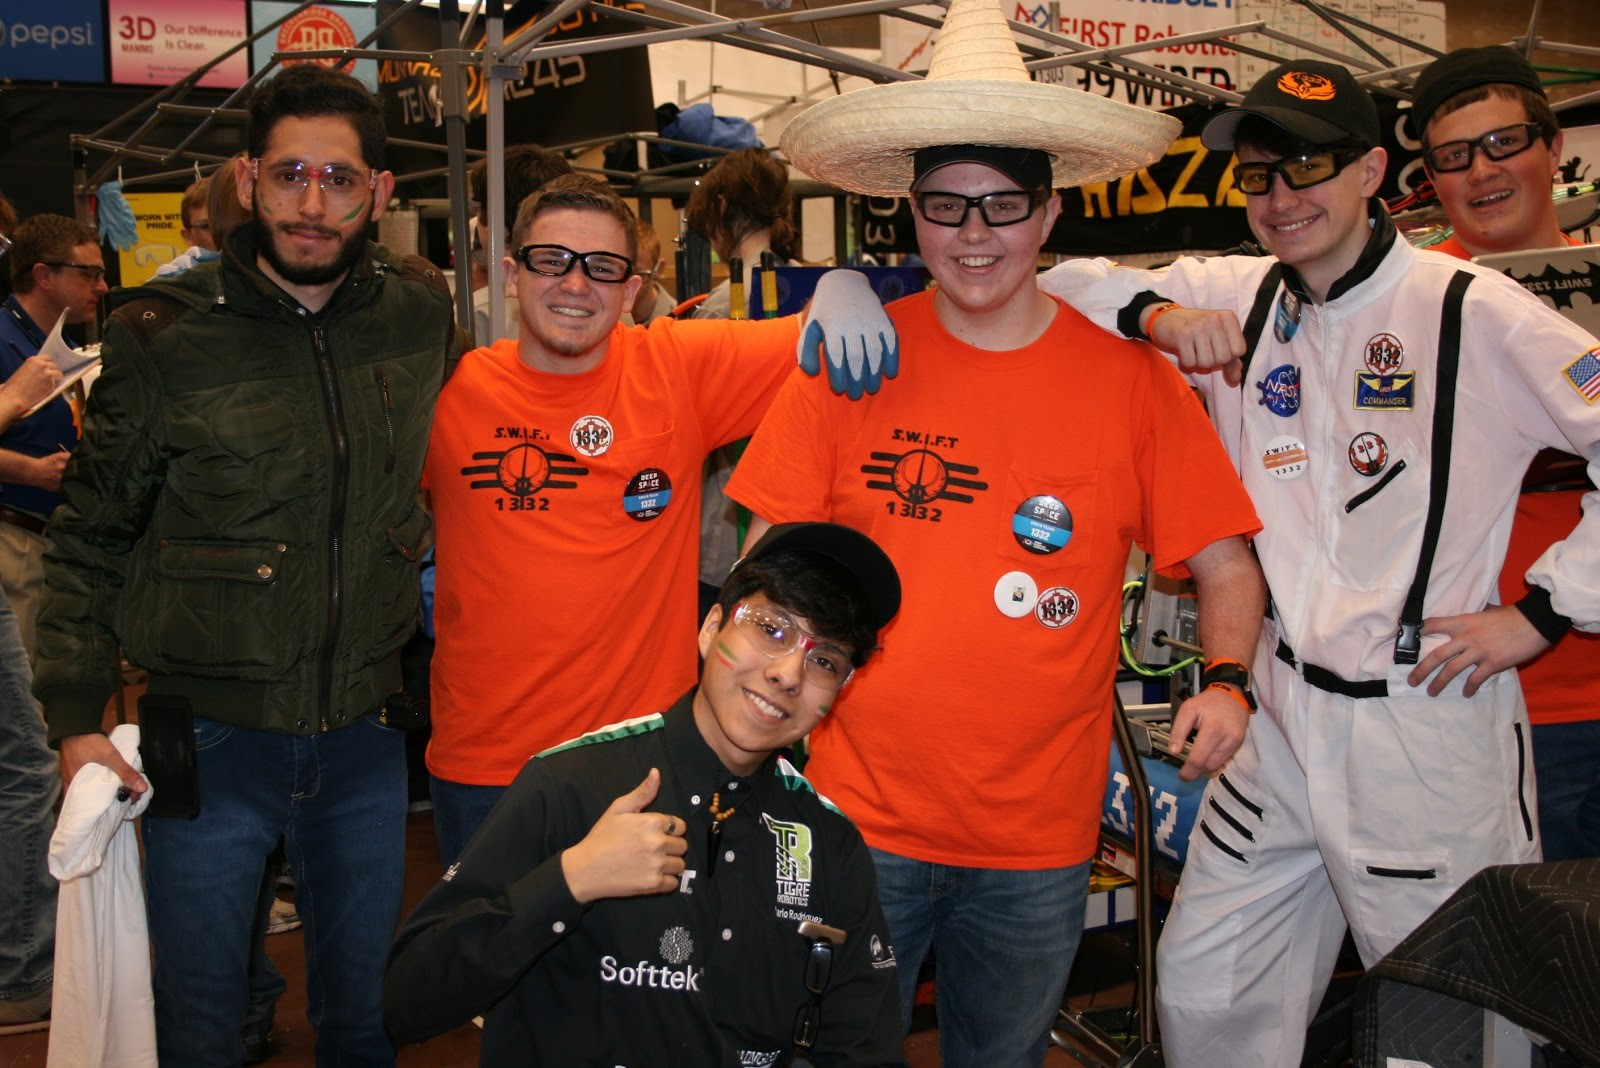 Get to know more about FRC Team 1332